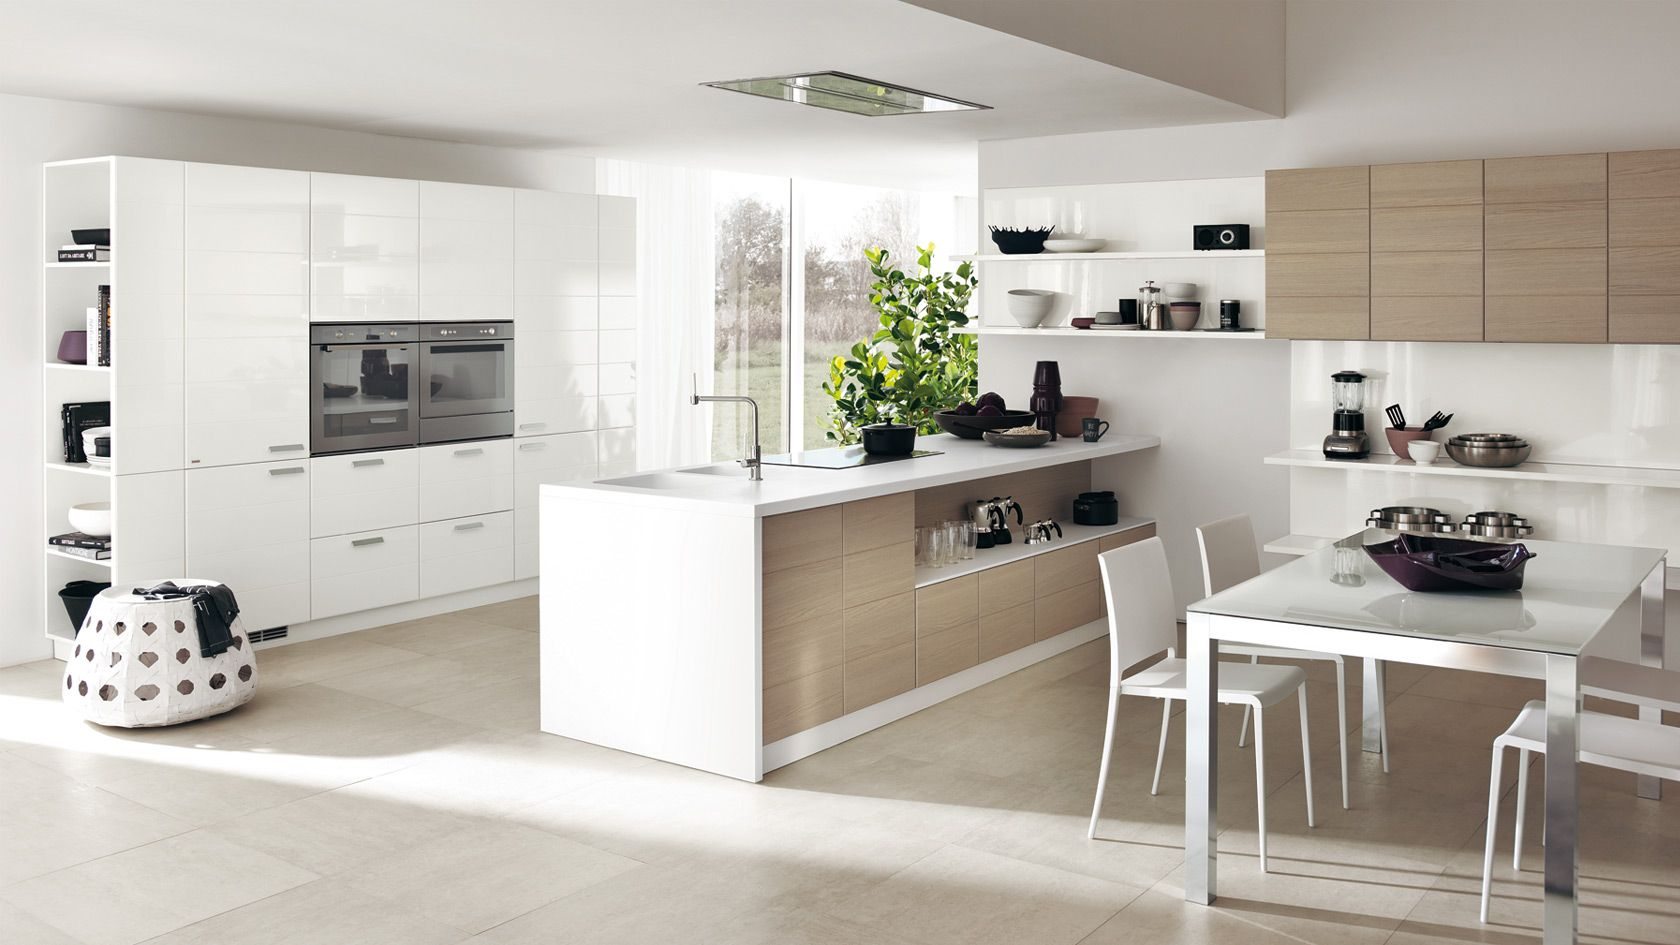 White Gloss Contemporary Open Kitchen Feats White Wall Cupboards Gorgeous Kitchen Designs Contemporary Decorating Design